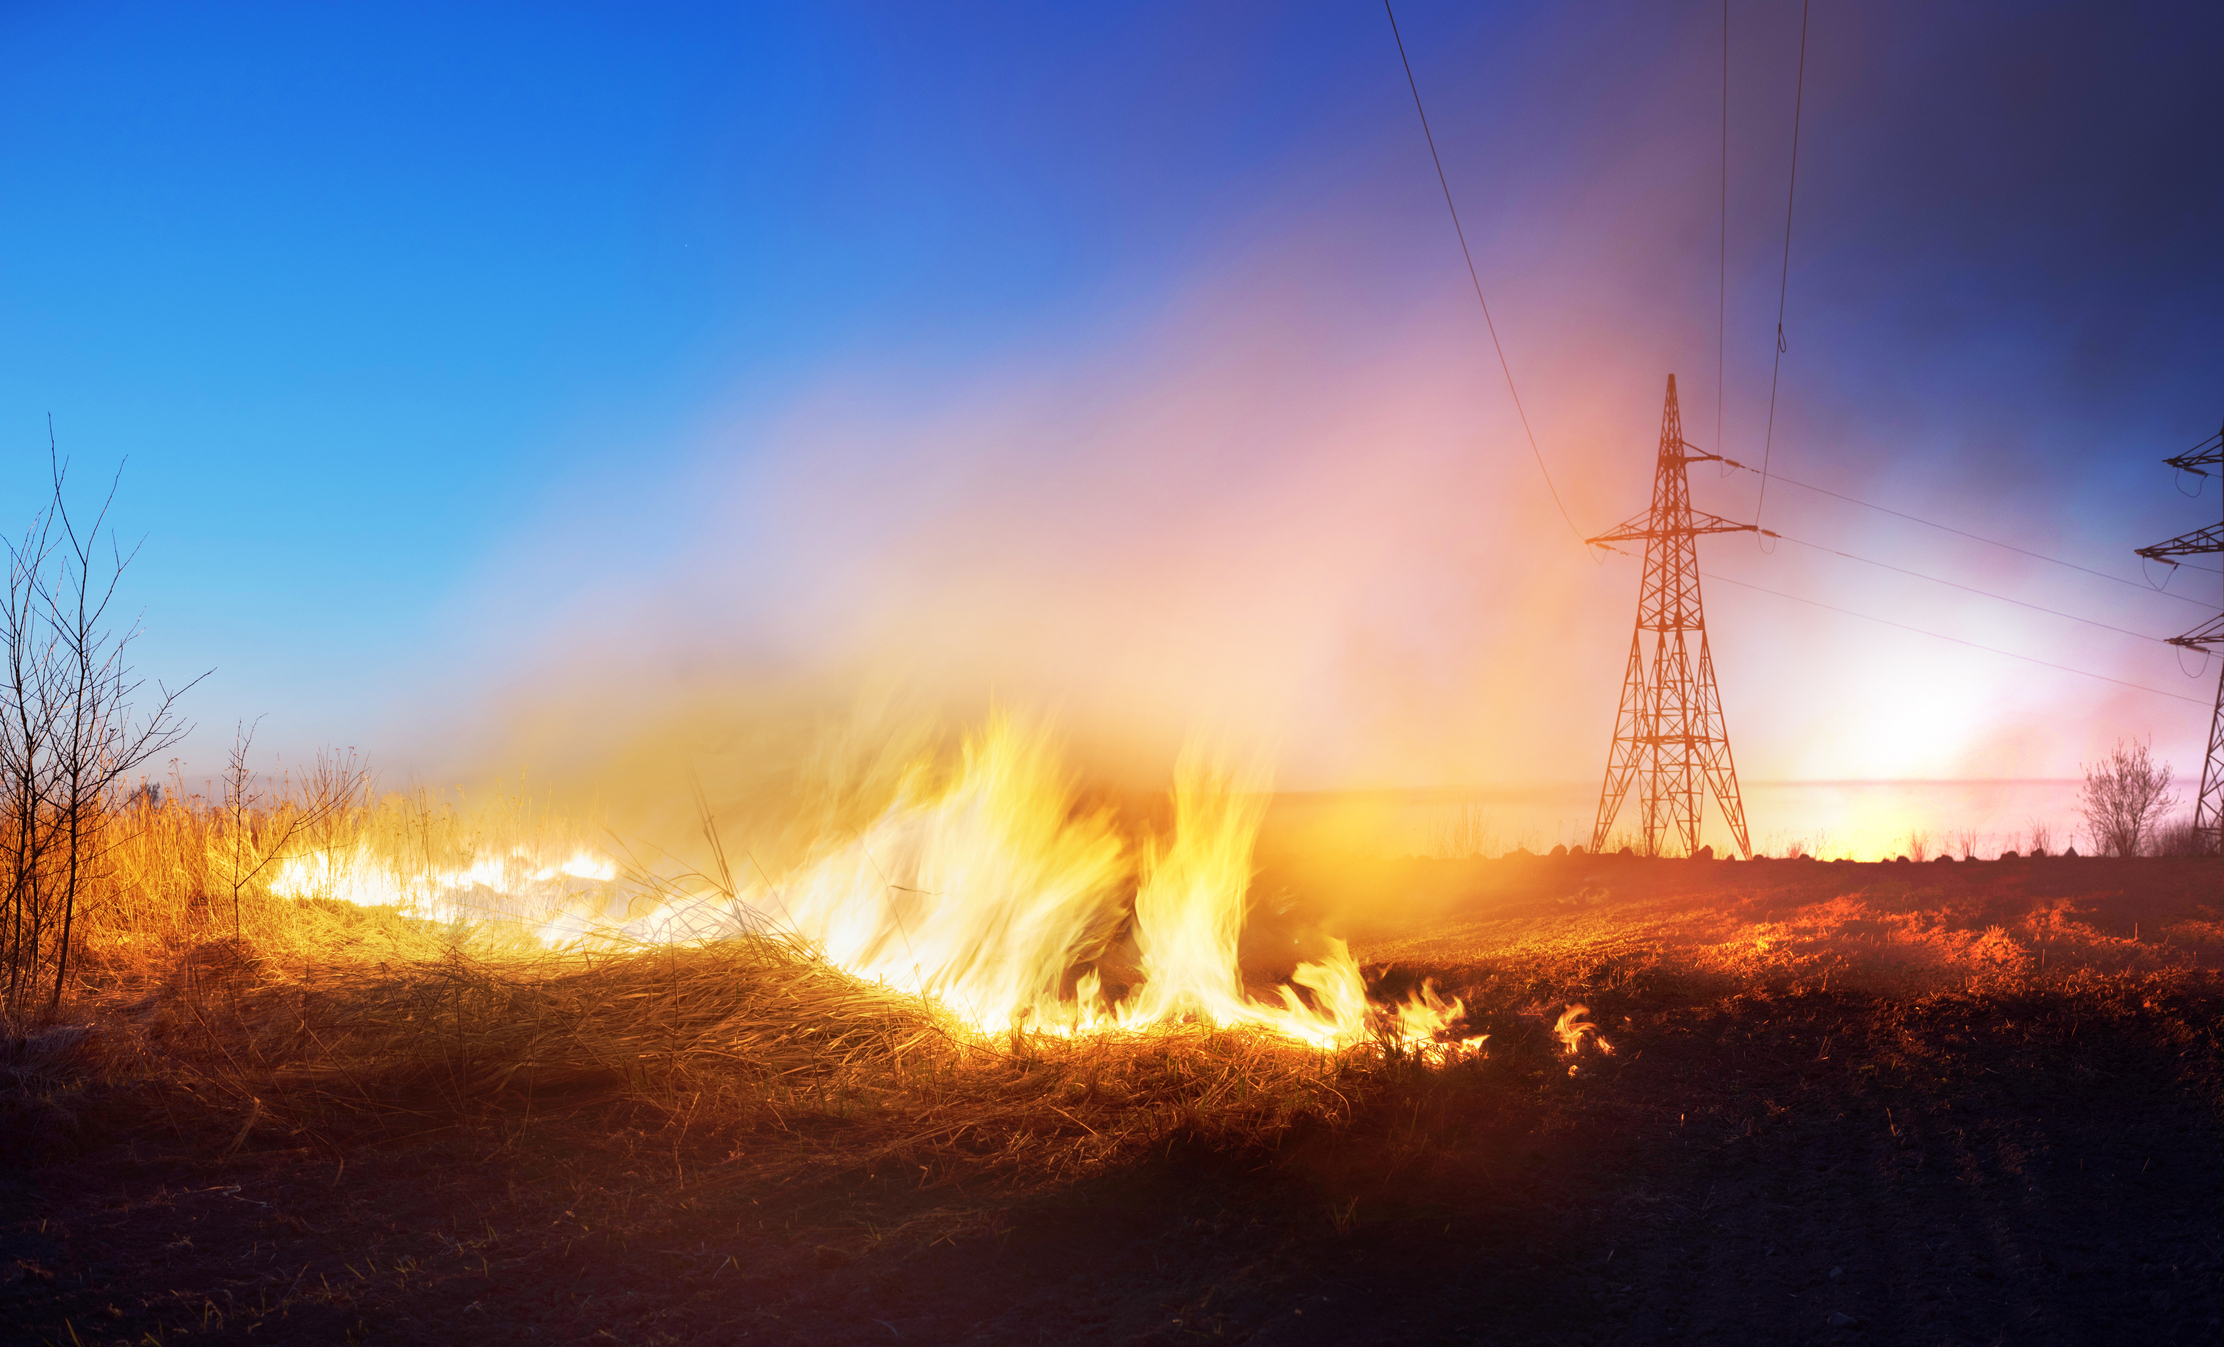 grass fire under powerlines